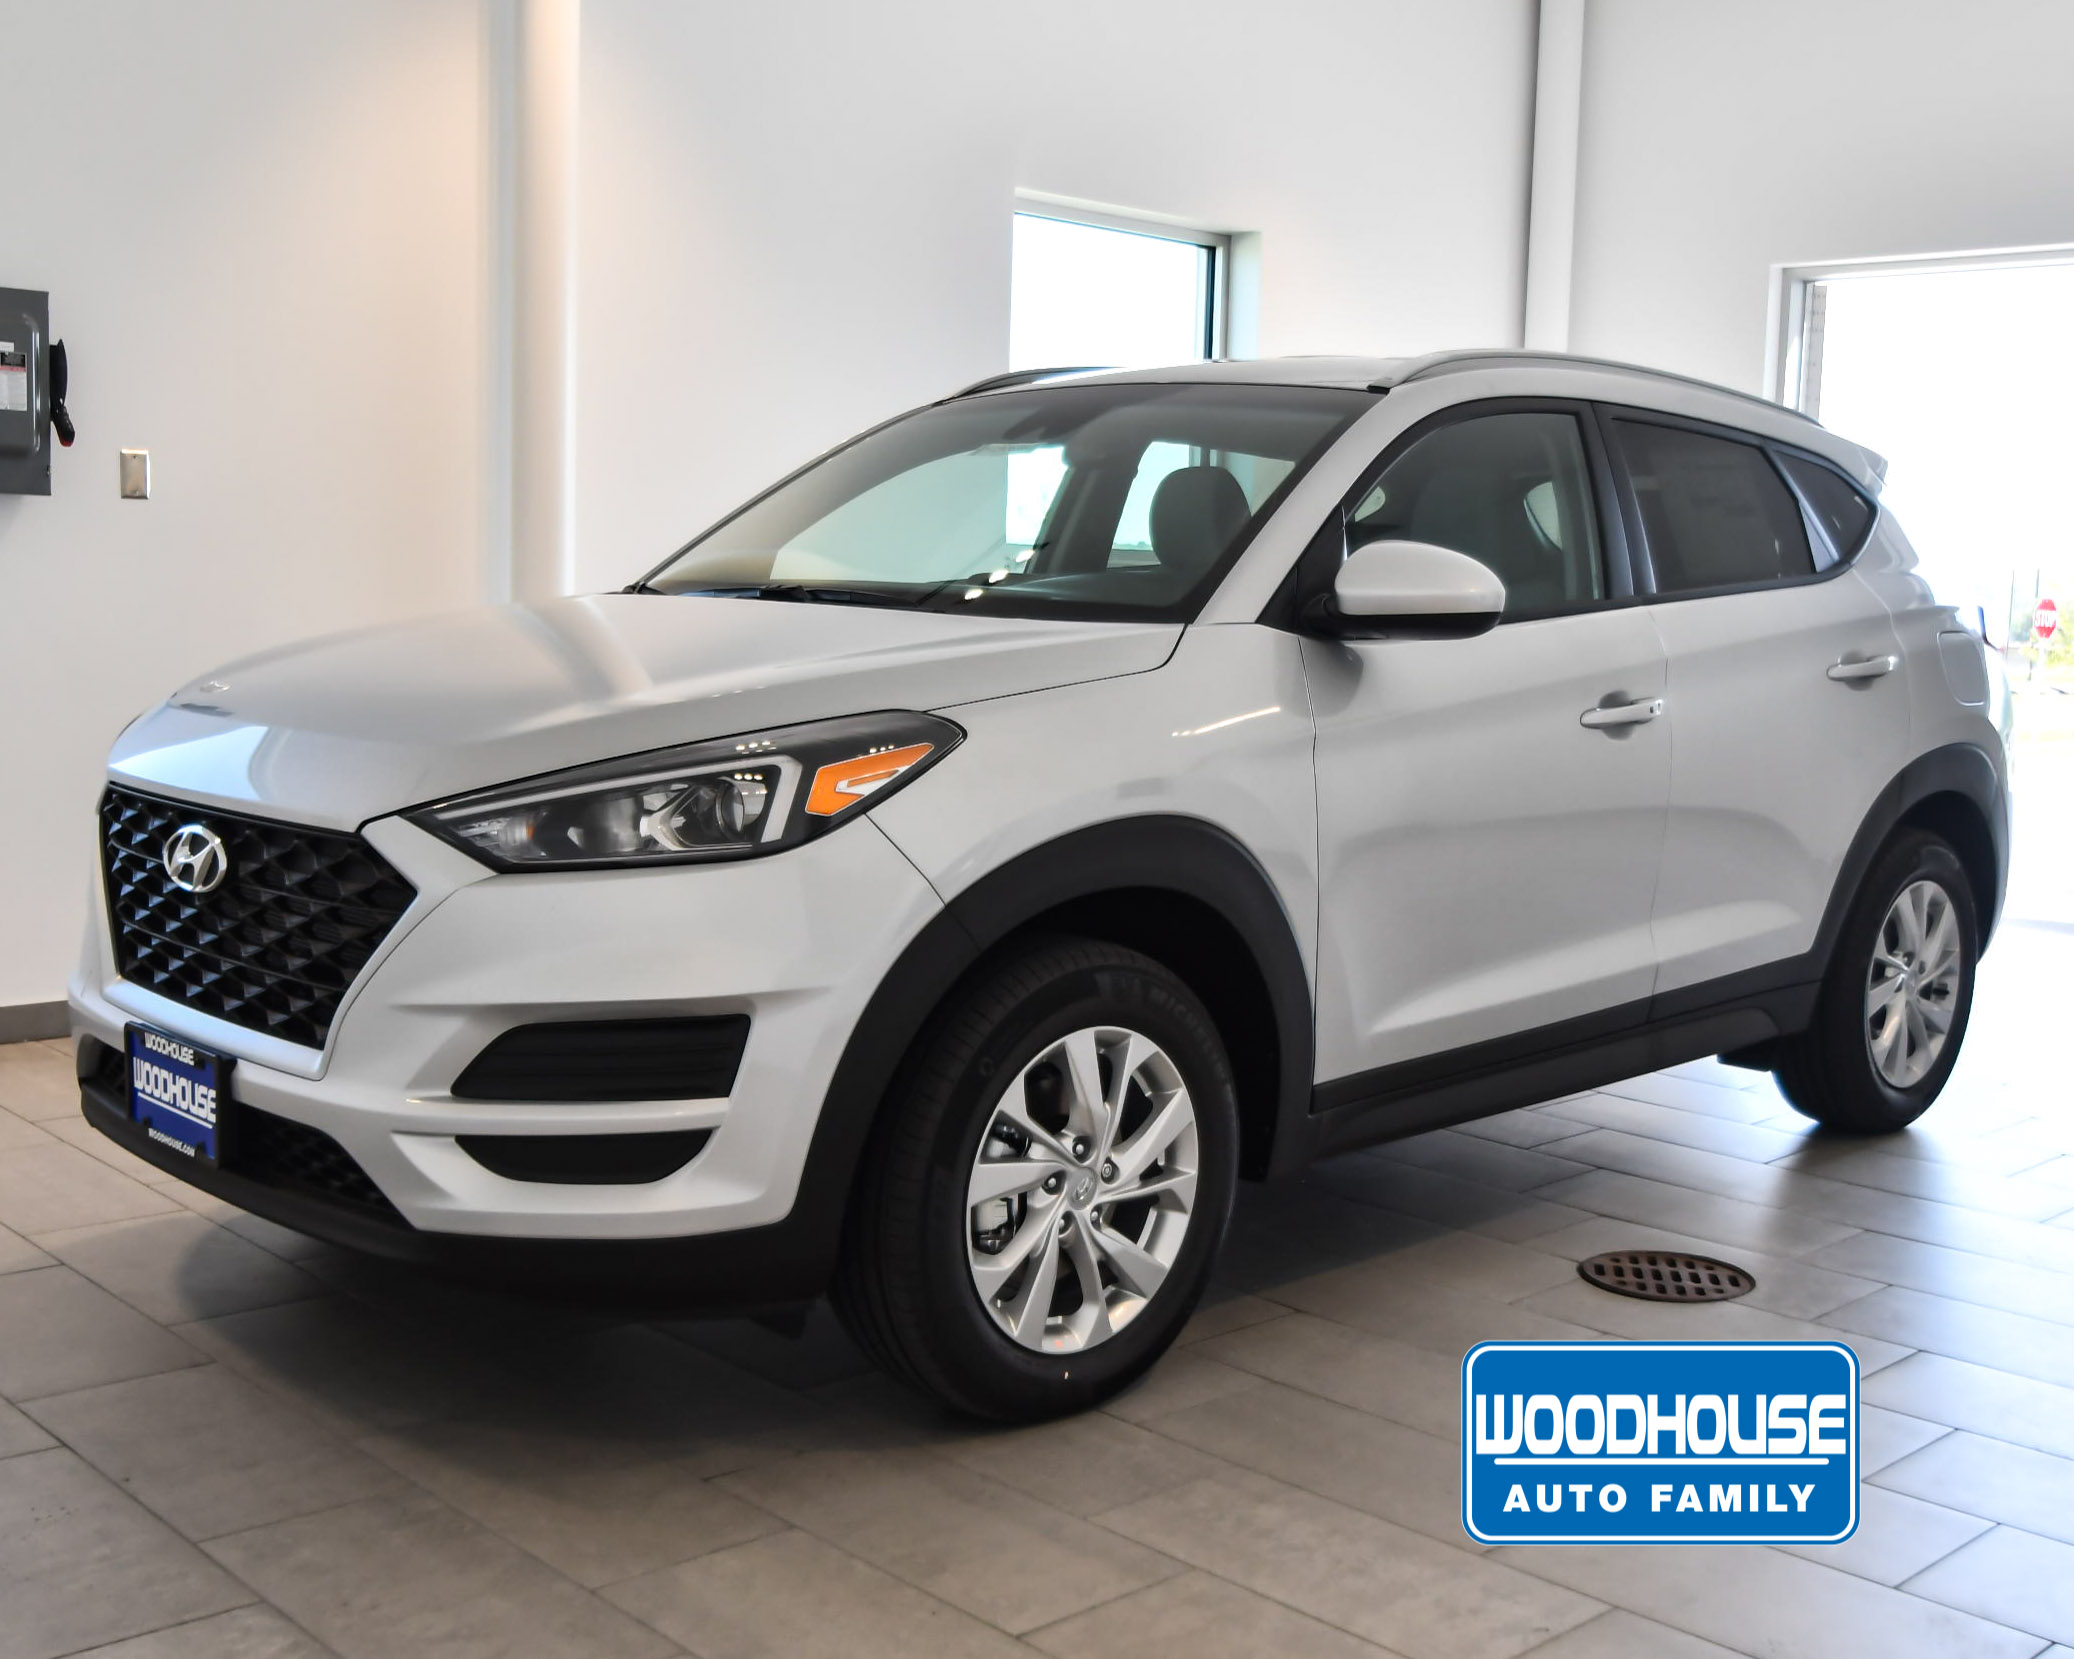 Woodhouse Hyundai Omaha >> Woodhouse New 2019 Hyundai Tucson For Sale Hyundai Omaha